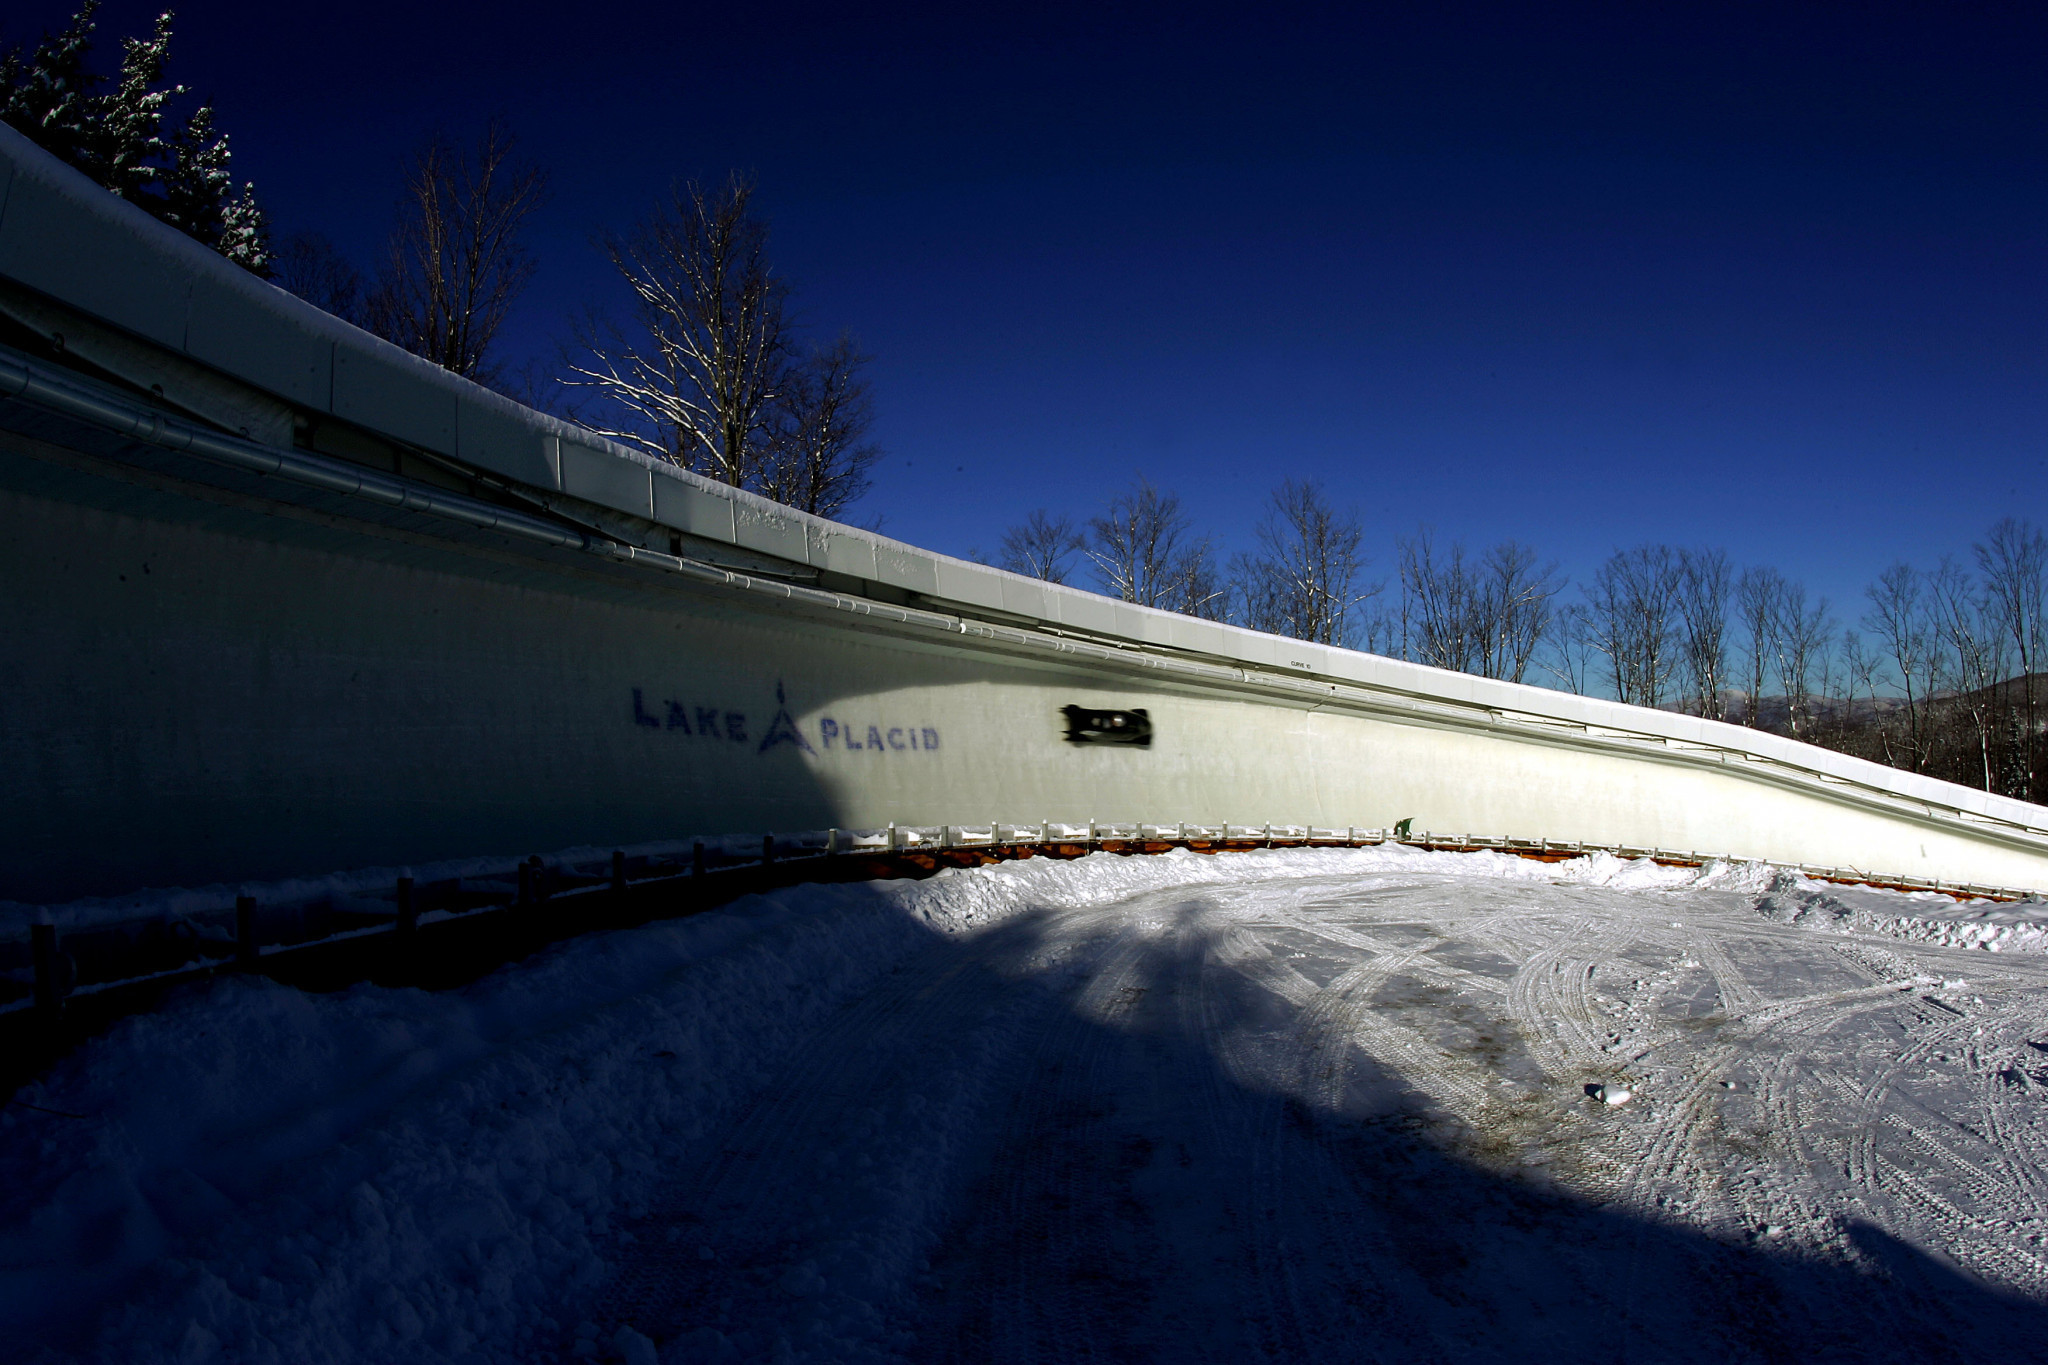 The latest money to upgrade sports venues ahead of Lake Placid 2023 has come from $105 million of new capital funding distributed to New York State's Olympic Regional Development Authority ©Getty Images